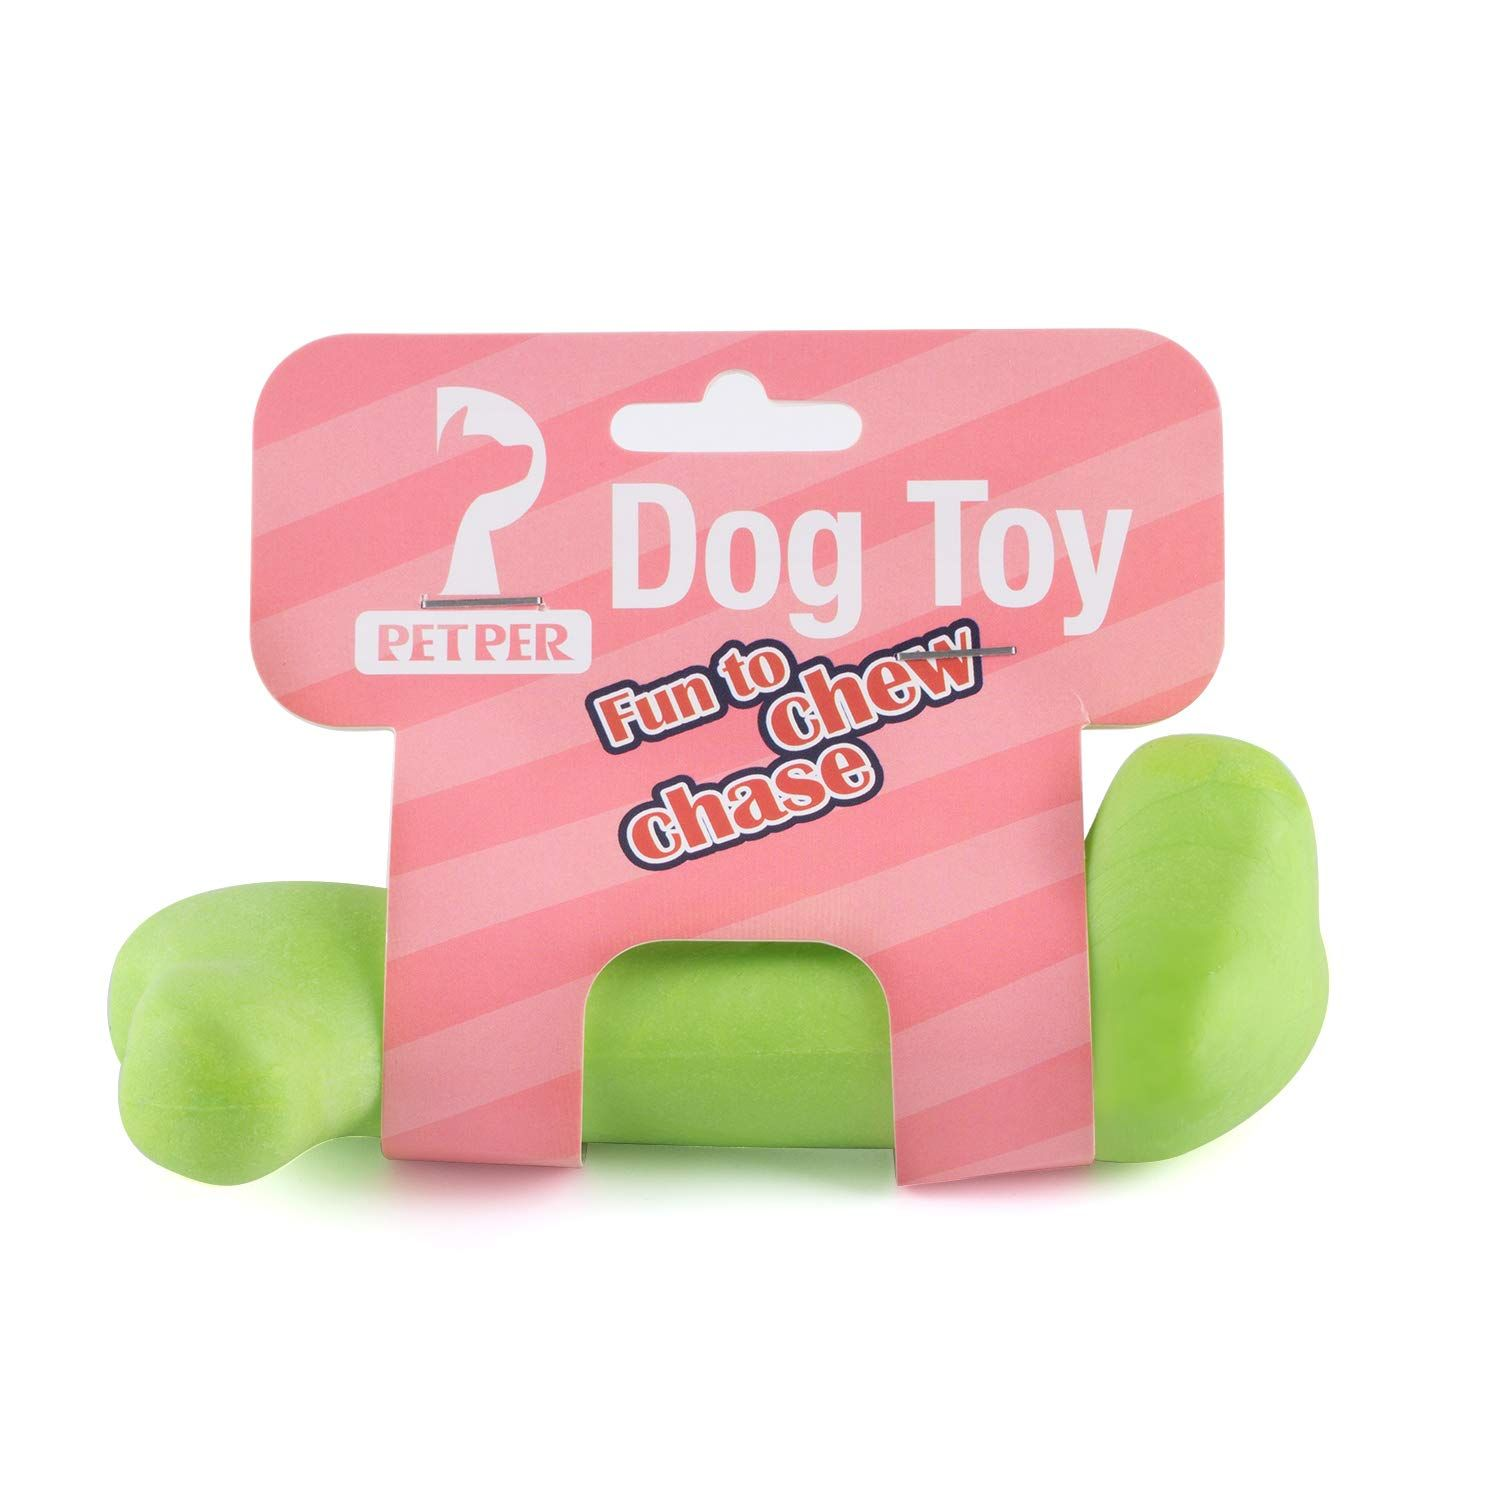 Dog Chew Toy Durable Dog Bone Toys For Puppy Dogs Ad Toy